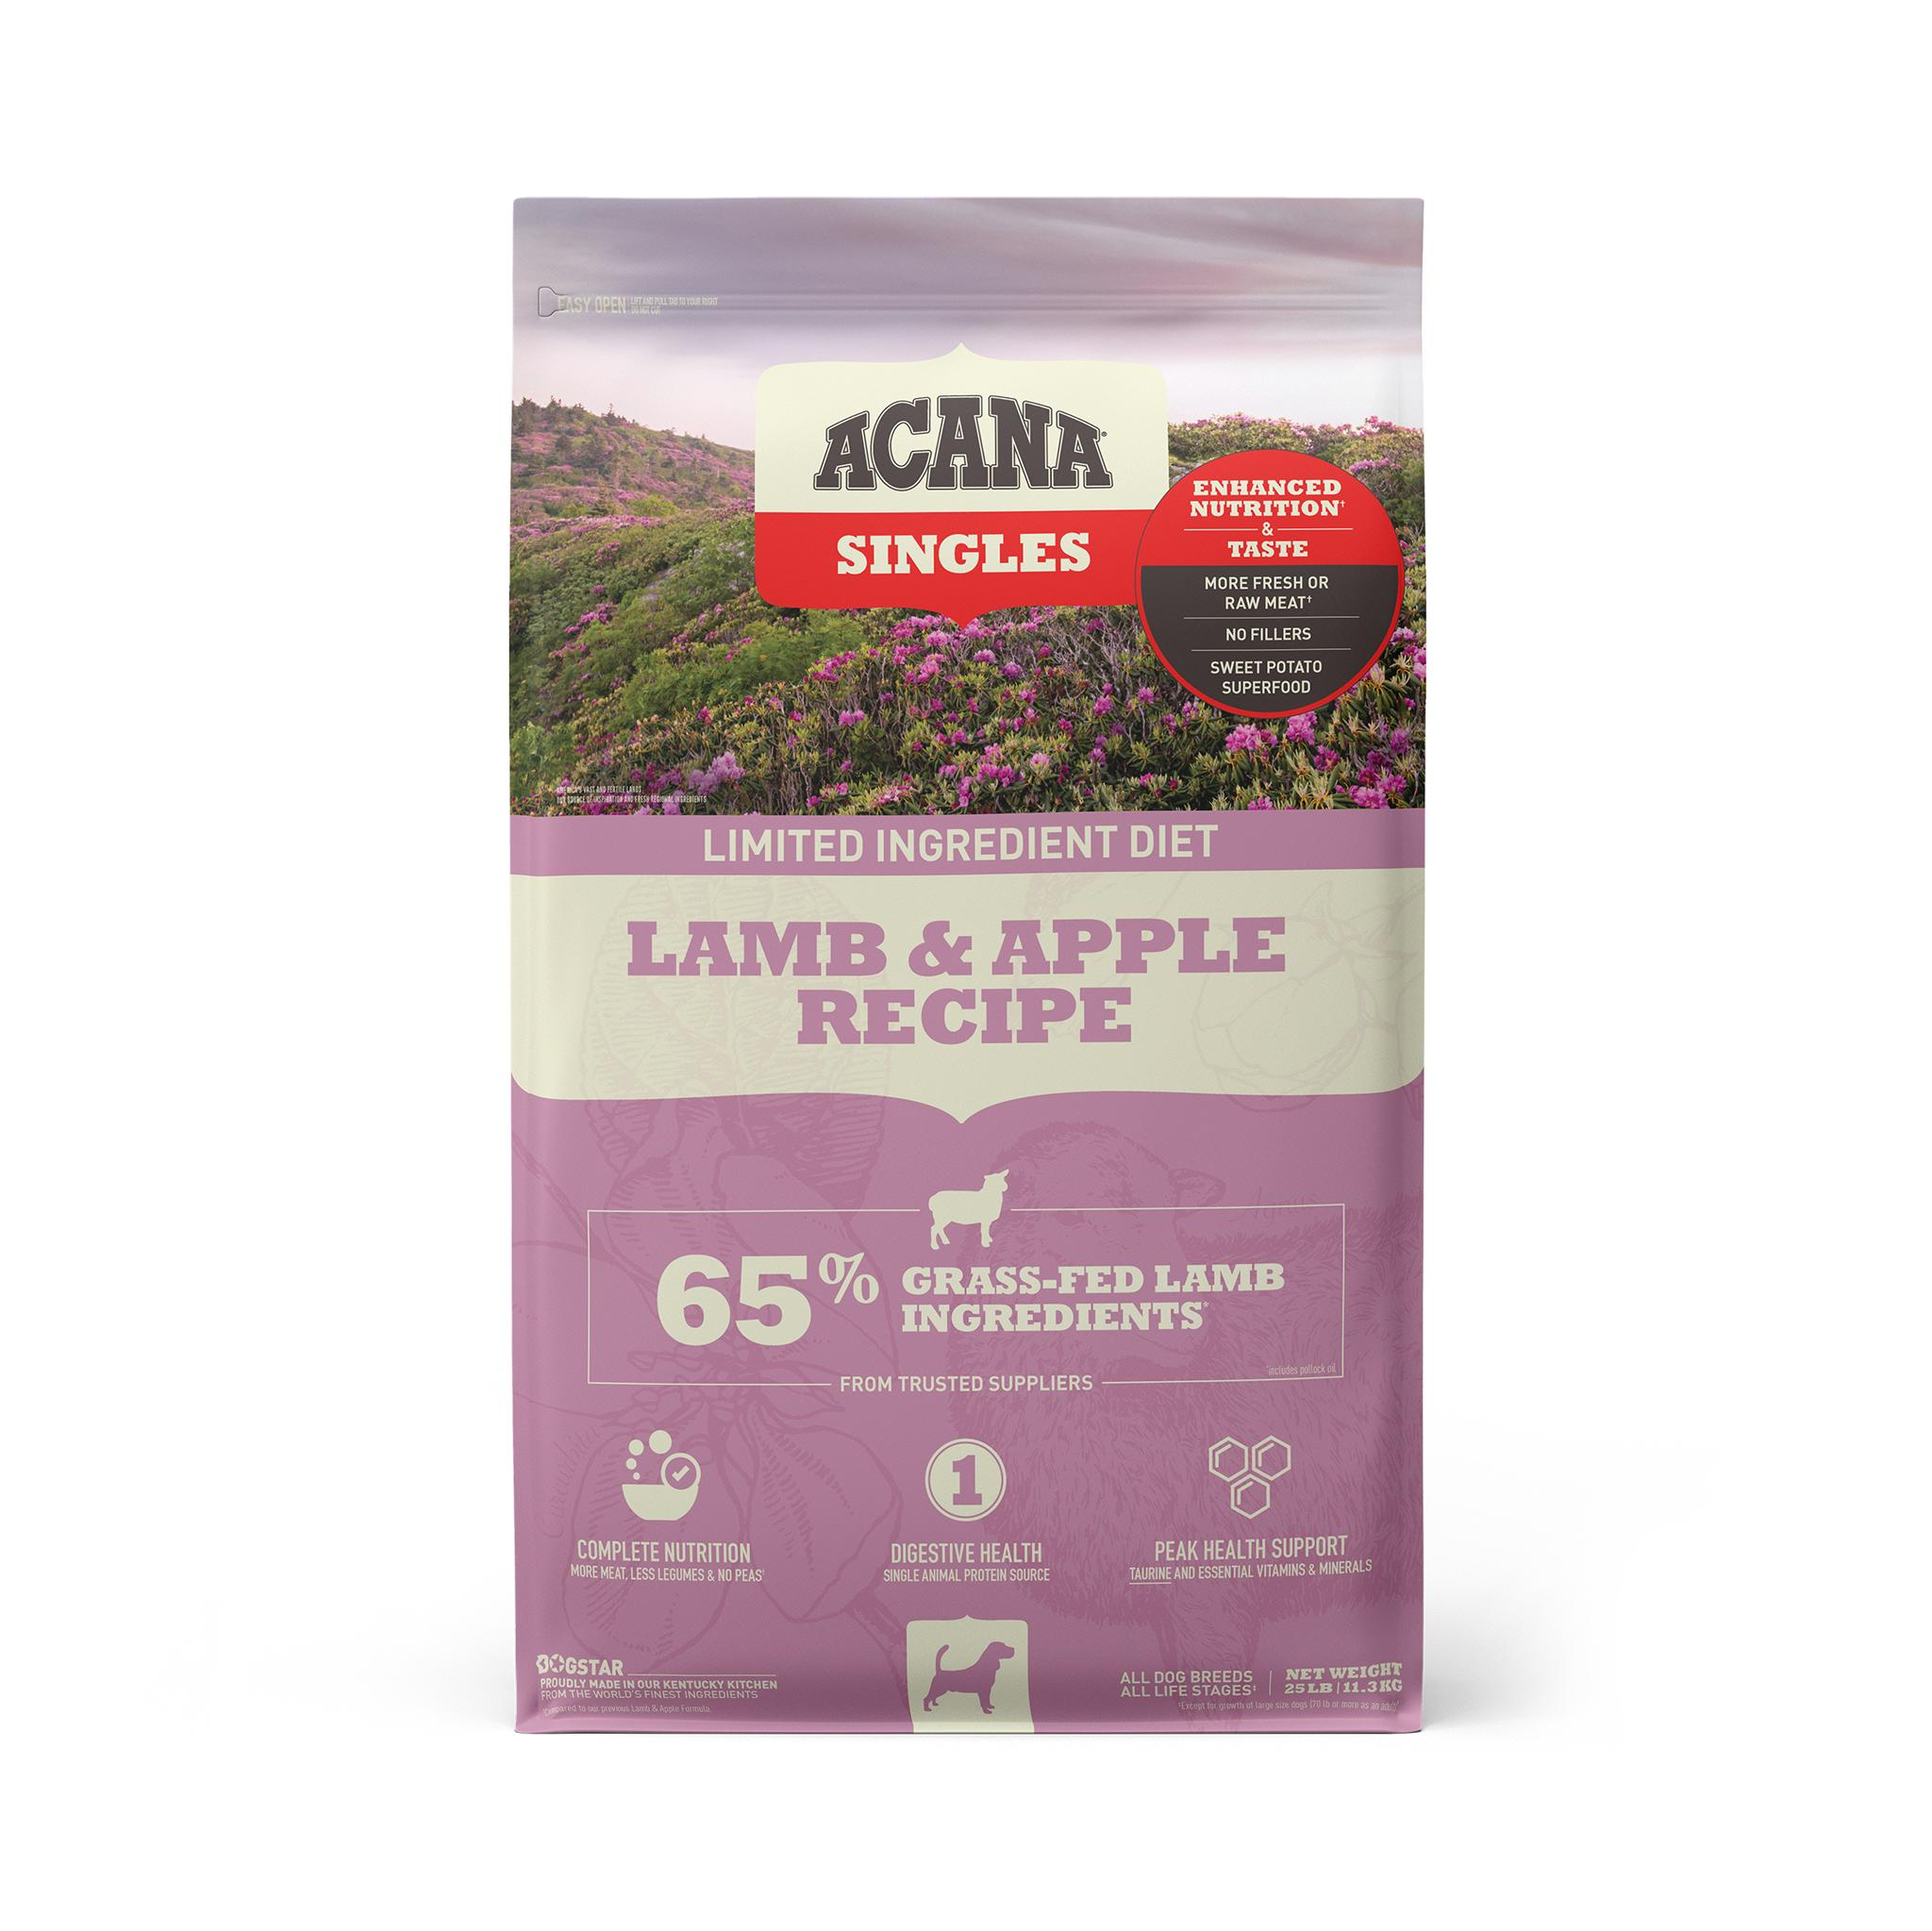 ACANA Singles Limited Ingredient Lamb & Apple Grain-Free Dry Dog Food, 25-lb bag